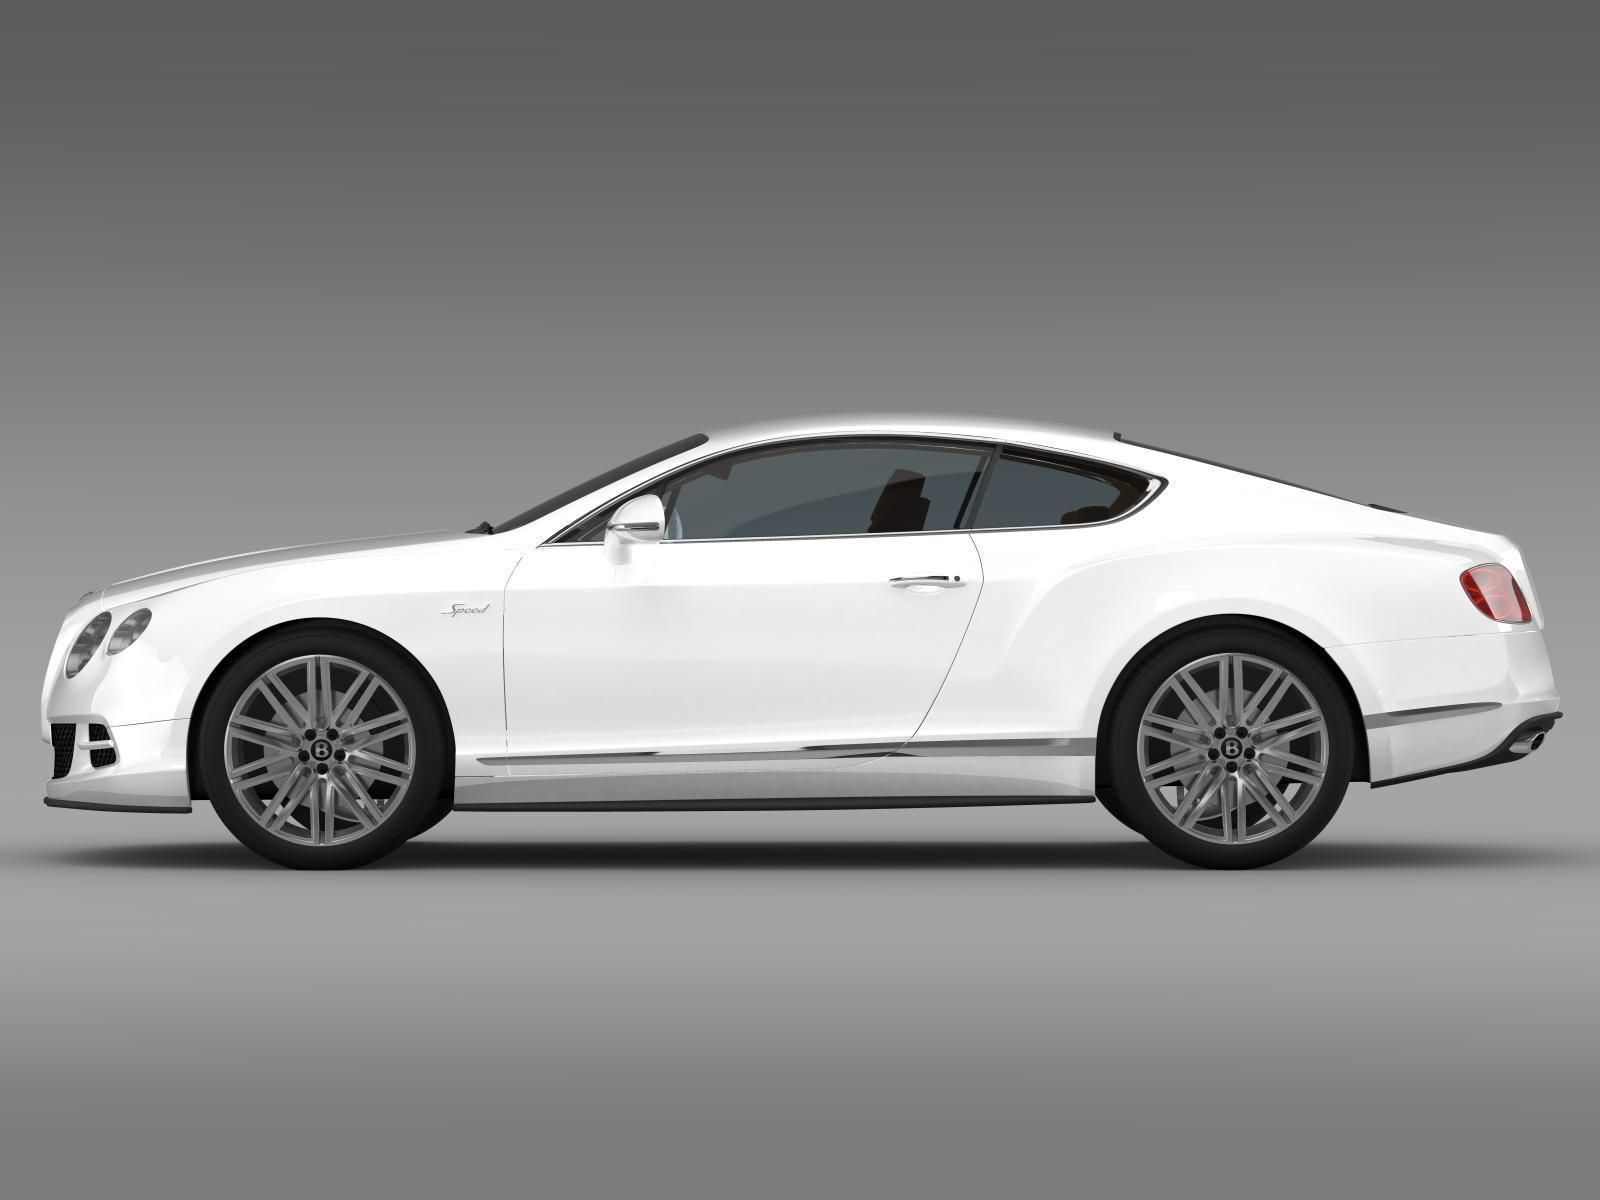 bentley continental gt speed 2014 3d model max obj 3ds fbx c4d lwo lw. Cars Review. Best American Auto & Cars Review